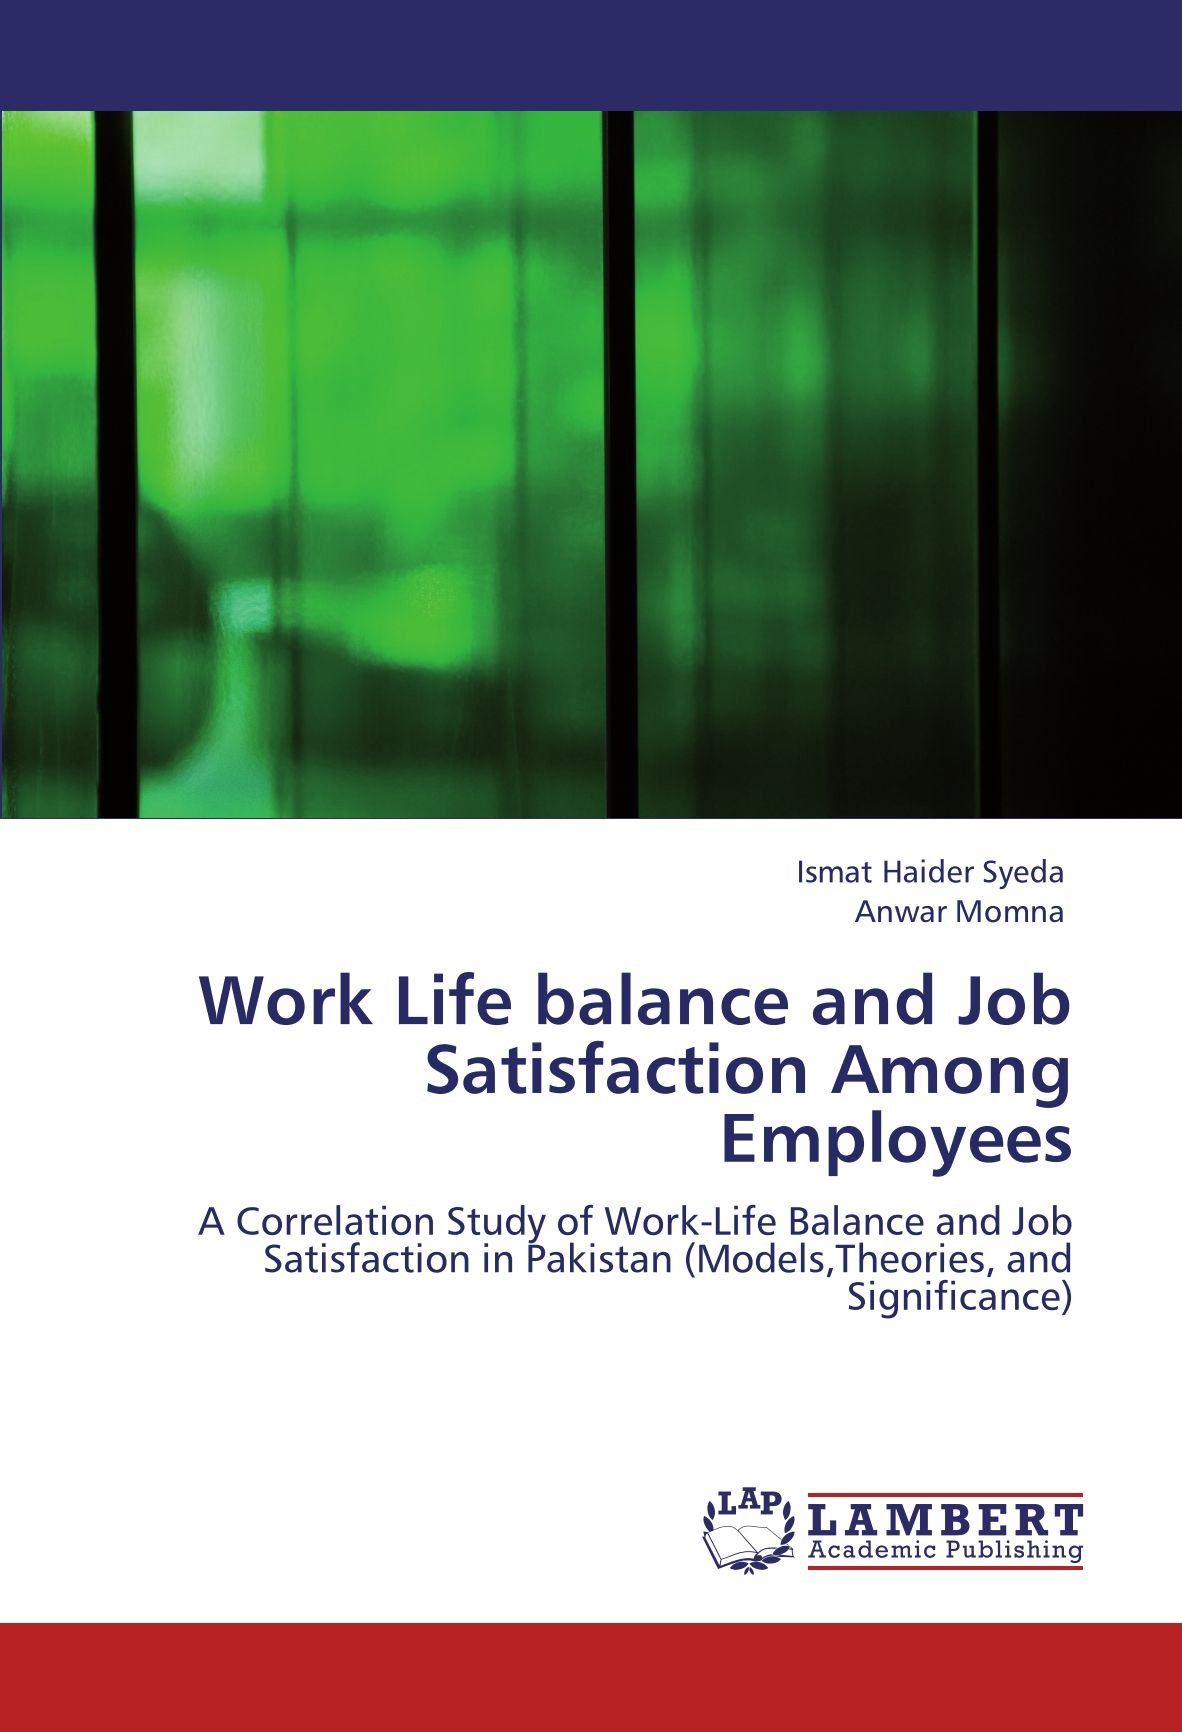 theories of work life balance work life balance reality or theory  work life balance and job satisfaction among employees a work life balance and job satisfaction among